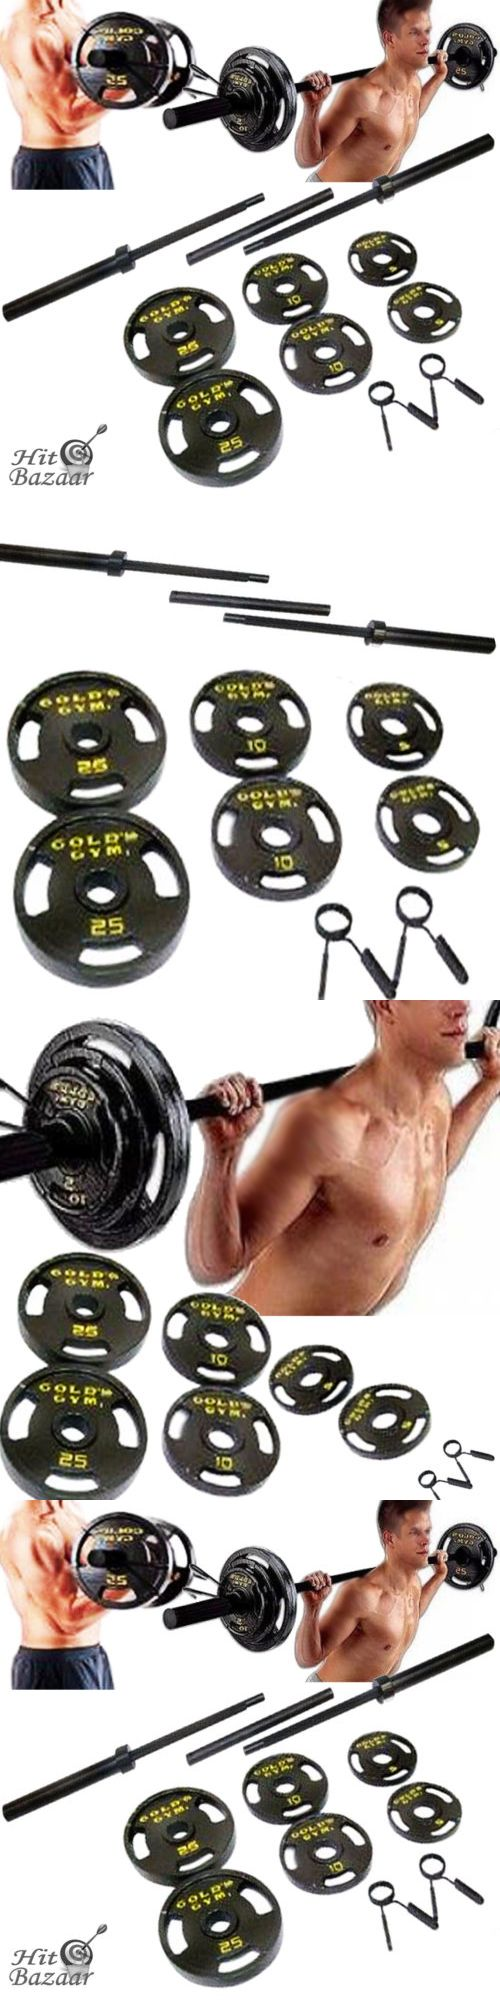 Barbells and Attachments 137864: Olympic Weight Set 110 Lb Plates Barbell Workout Gym Lifting Fitness Equipment -> BUY IT NOW ONLY: $118.96 on eBay!